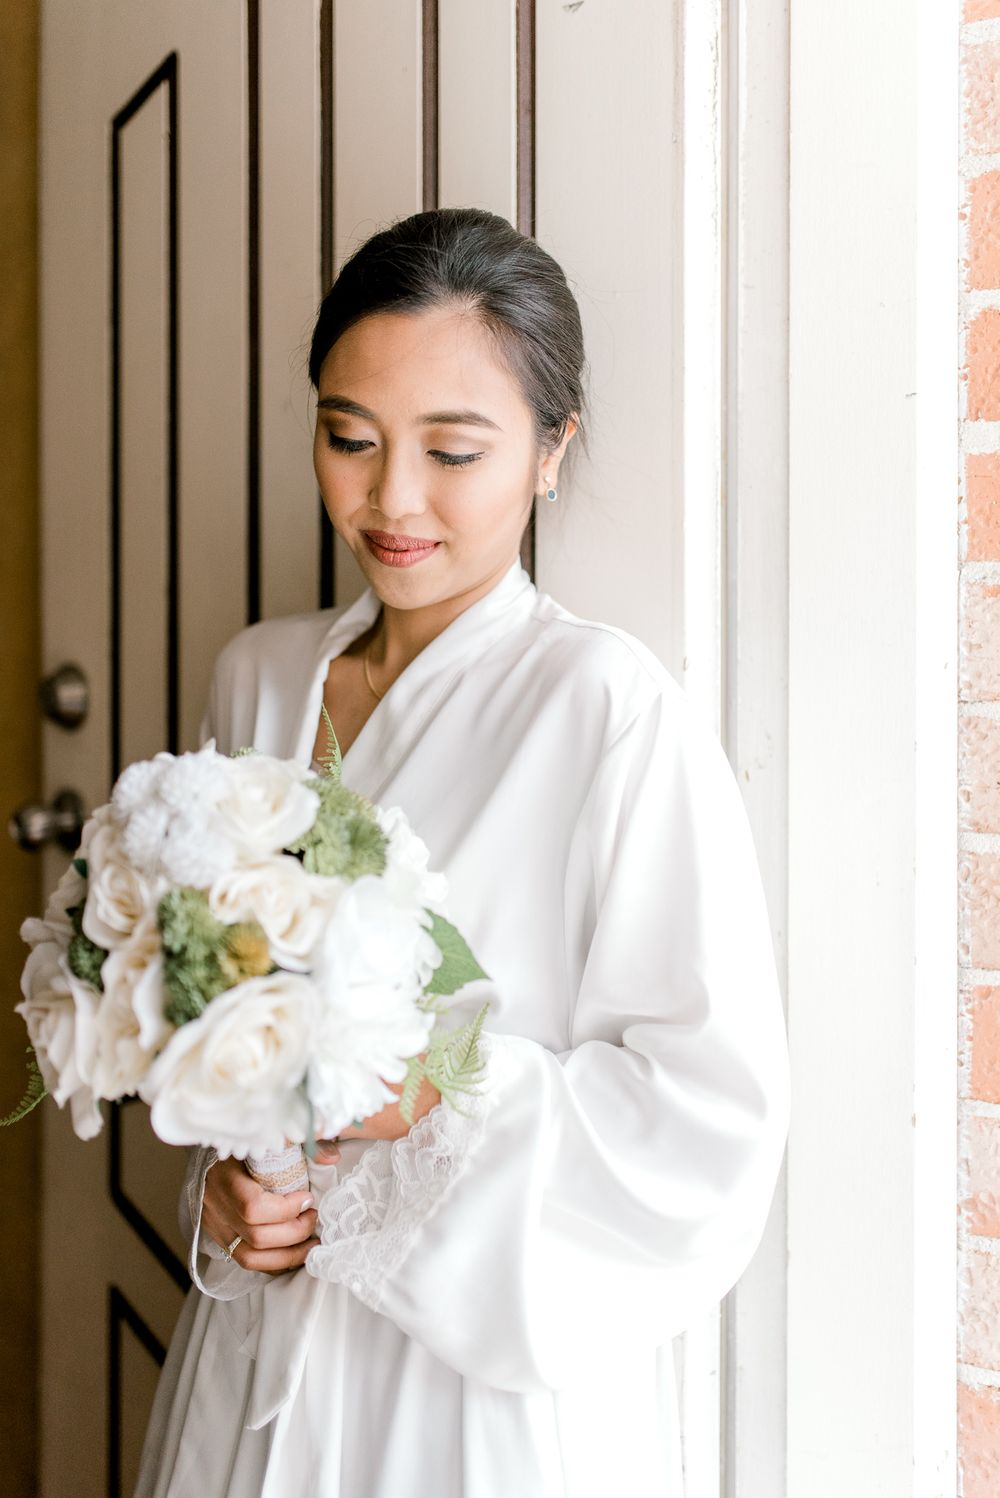 bride getting ready and holding flower bouquet with both hands